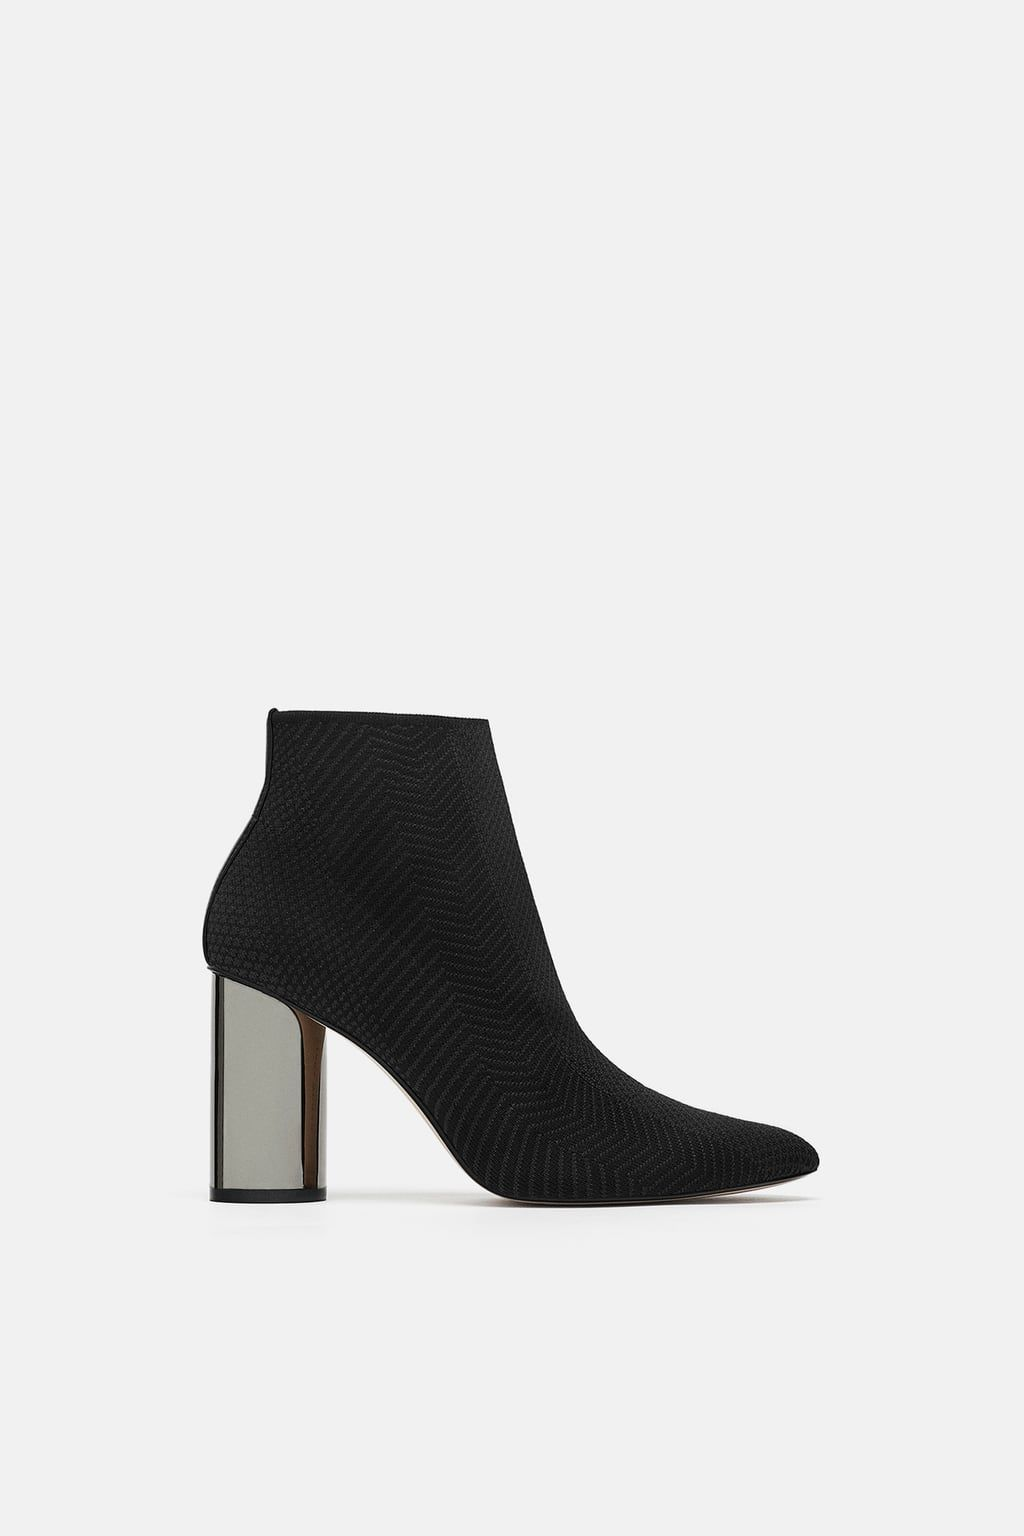 dcf796870667 Image 2 of FABRIC ANKLE BOOT WITH METALLIC HEEL from Zara